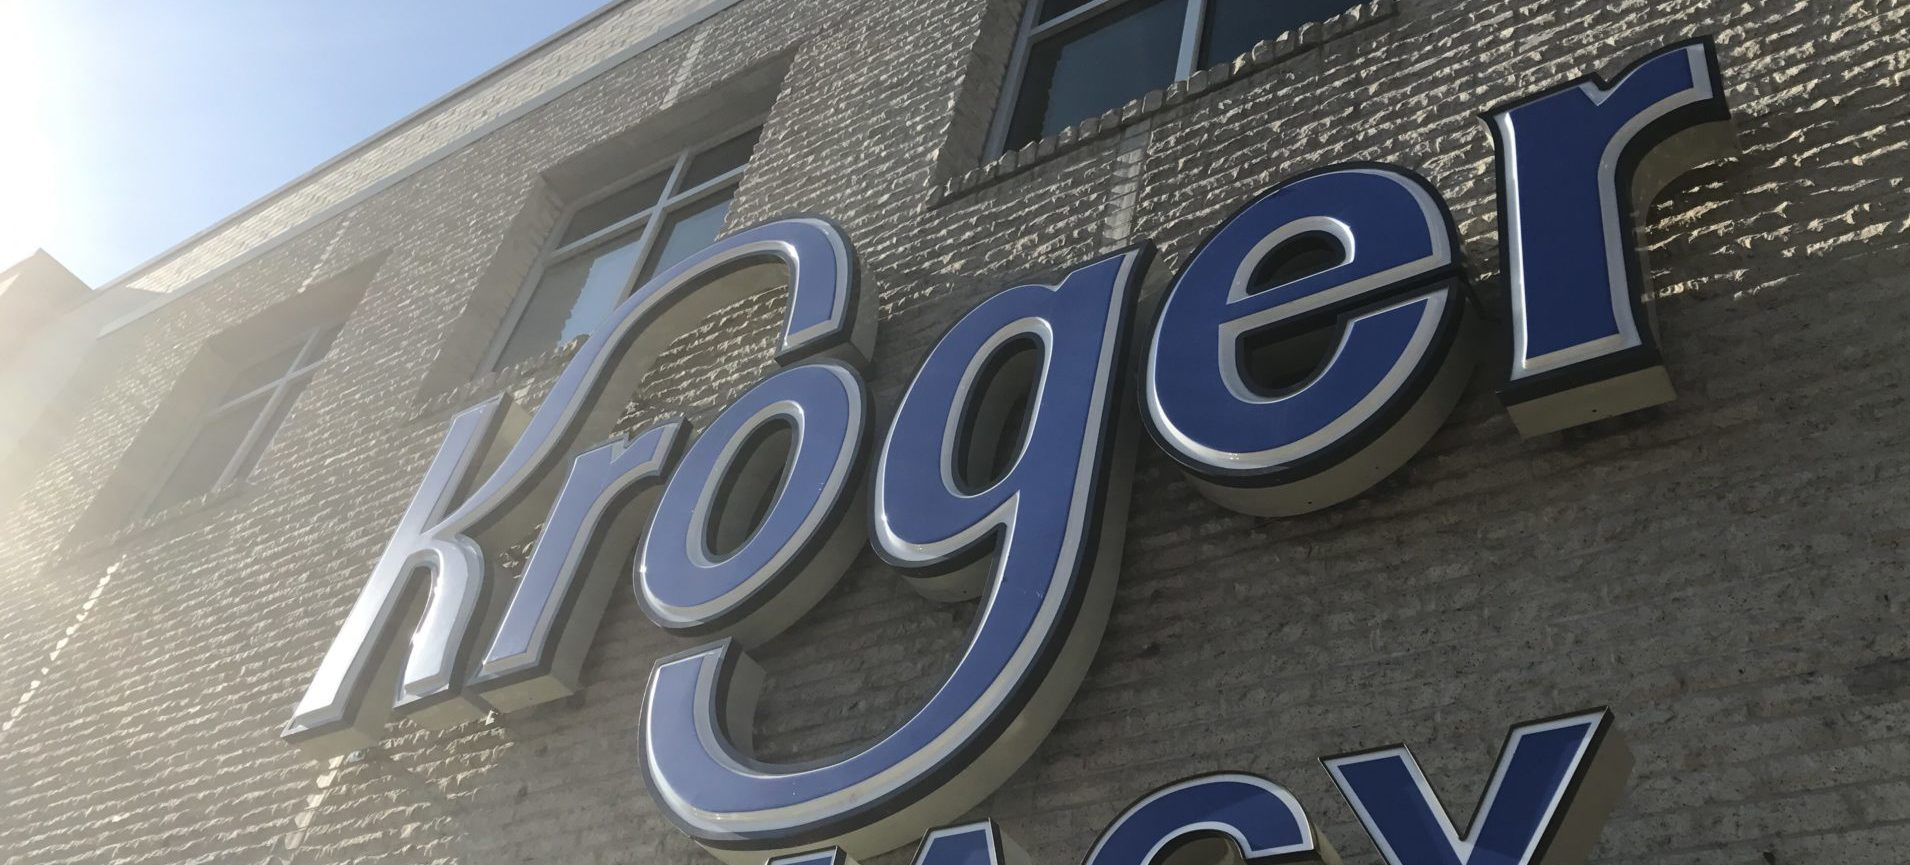 ABB Fights For Fairness For Pregnant Workers At Kroger Grocery Chain